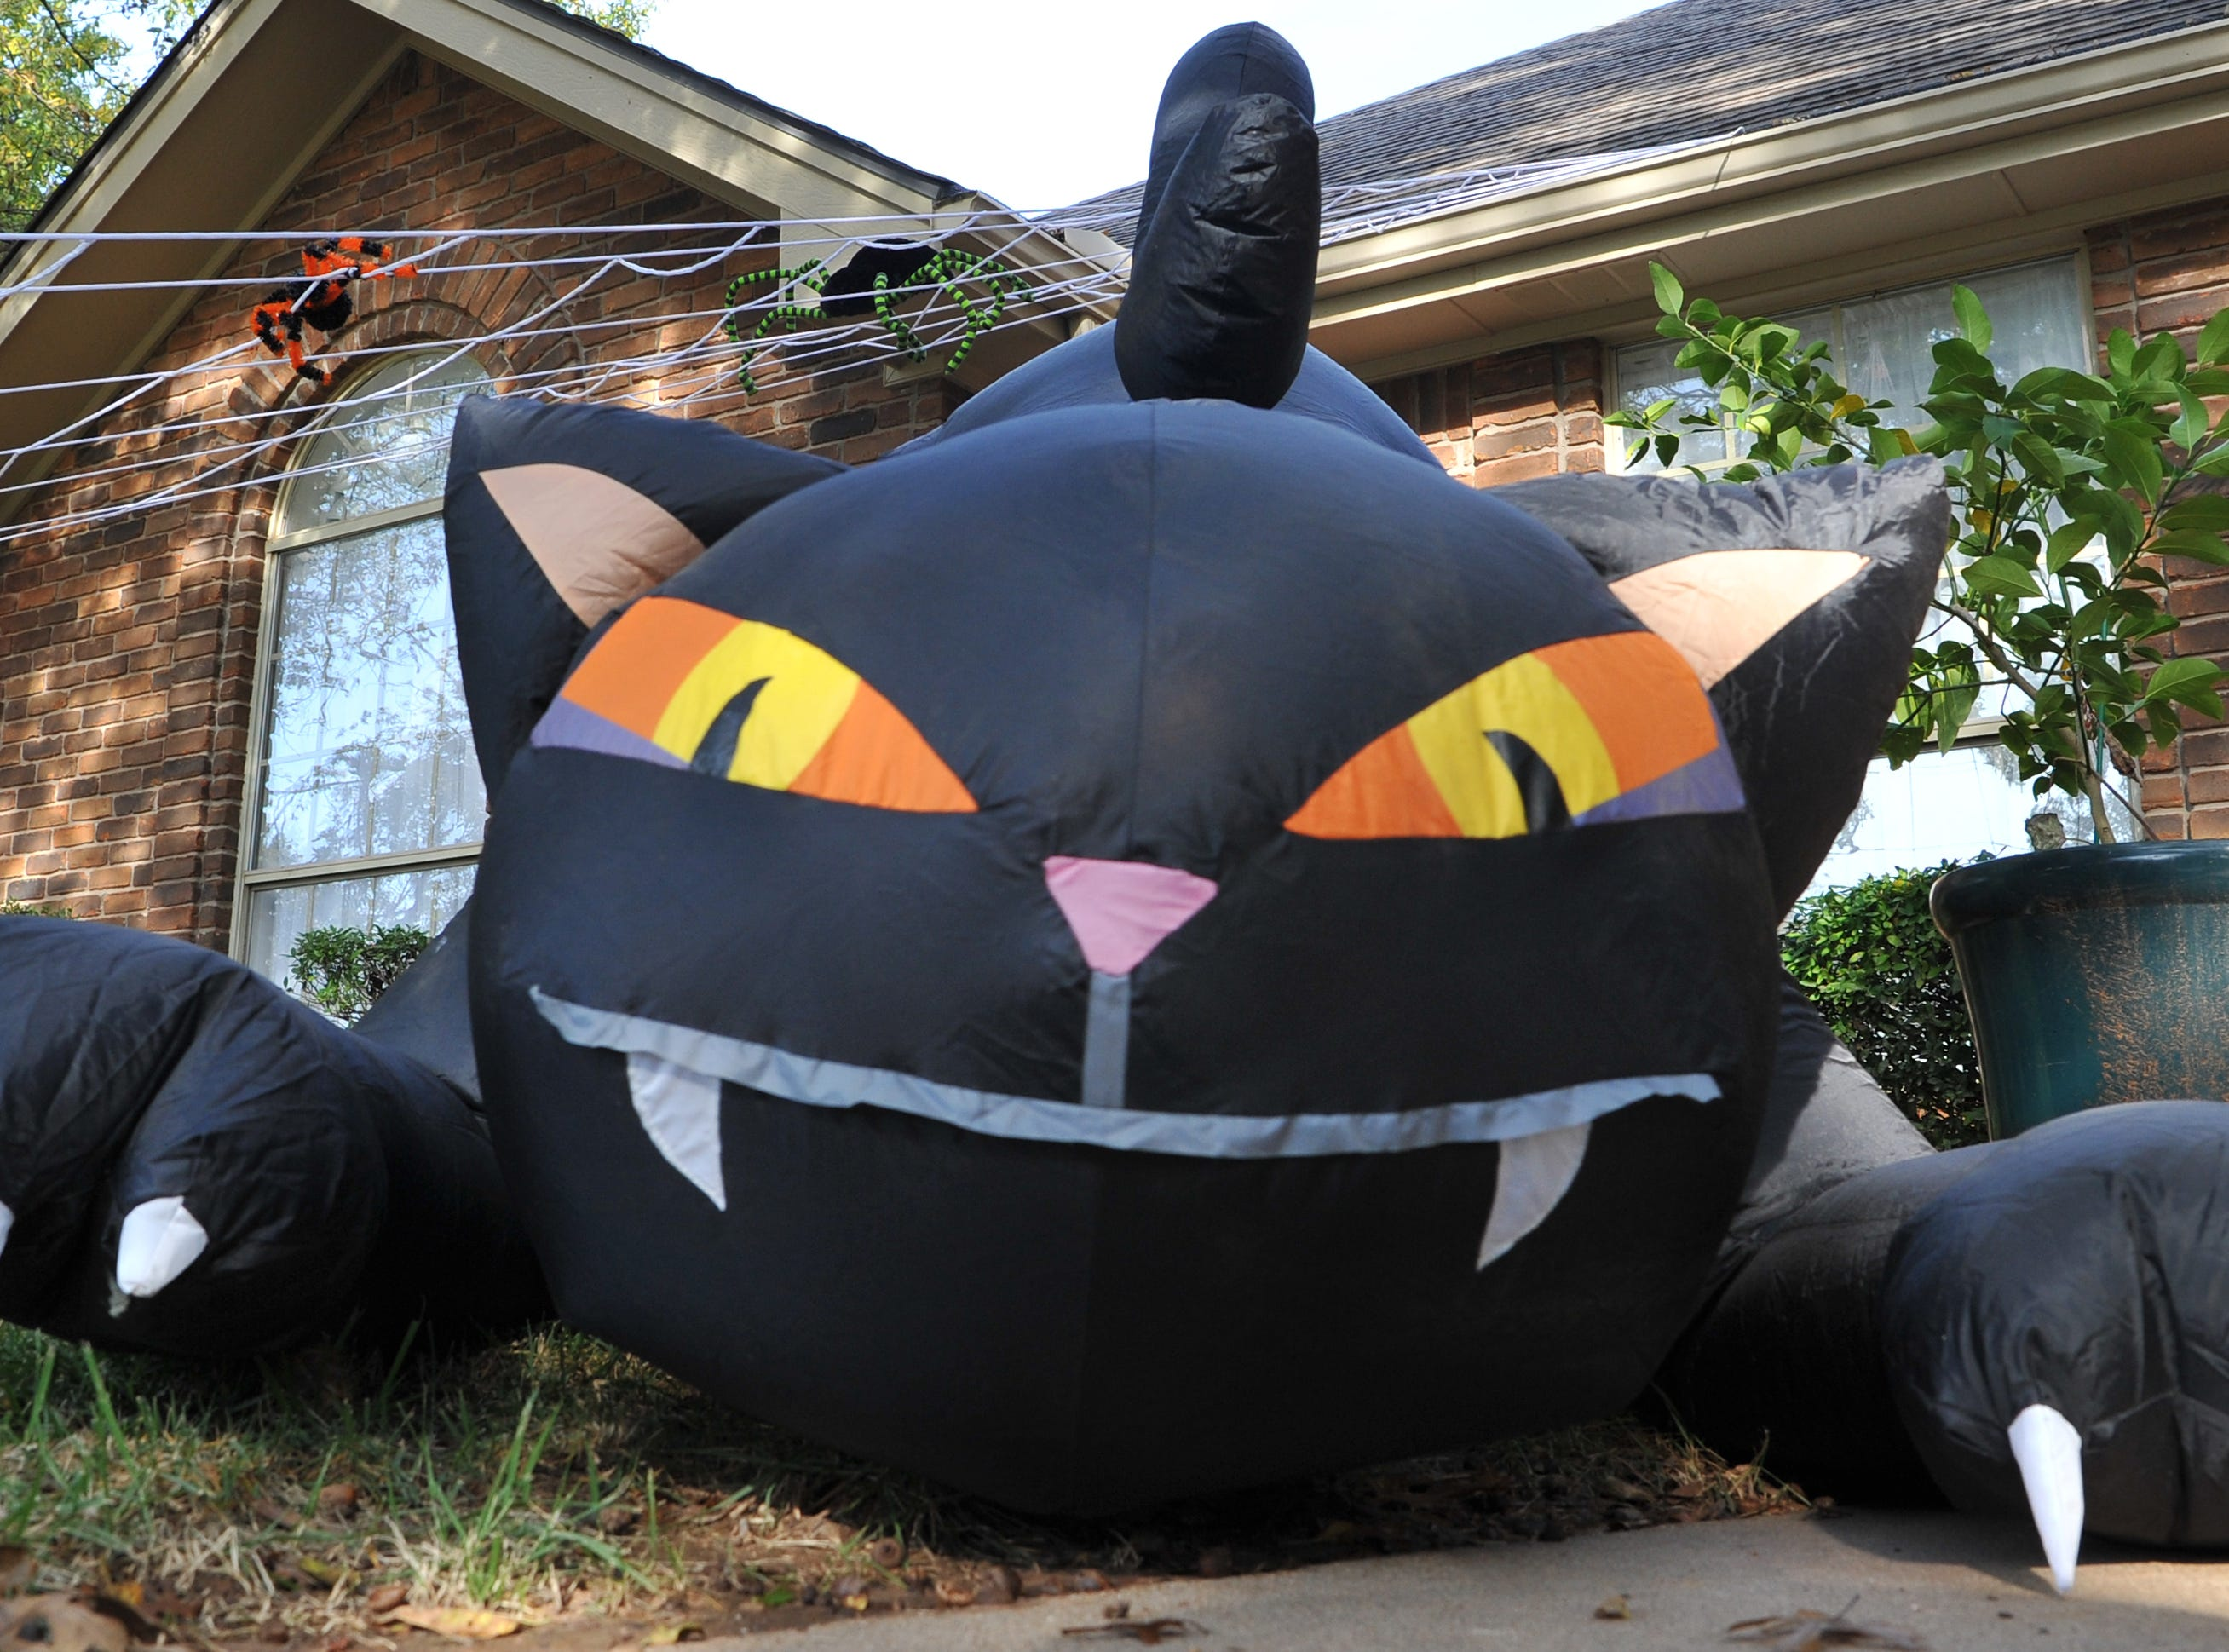 A home in Tanglewood is decorated with a large inflatable black cat for Halloween.